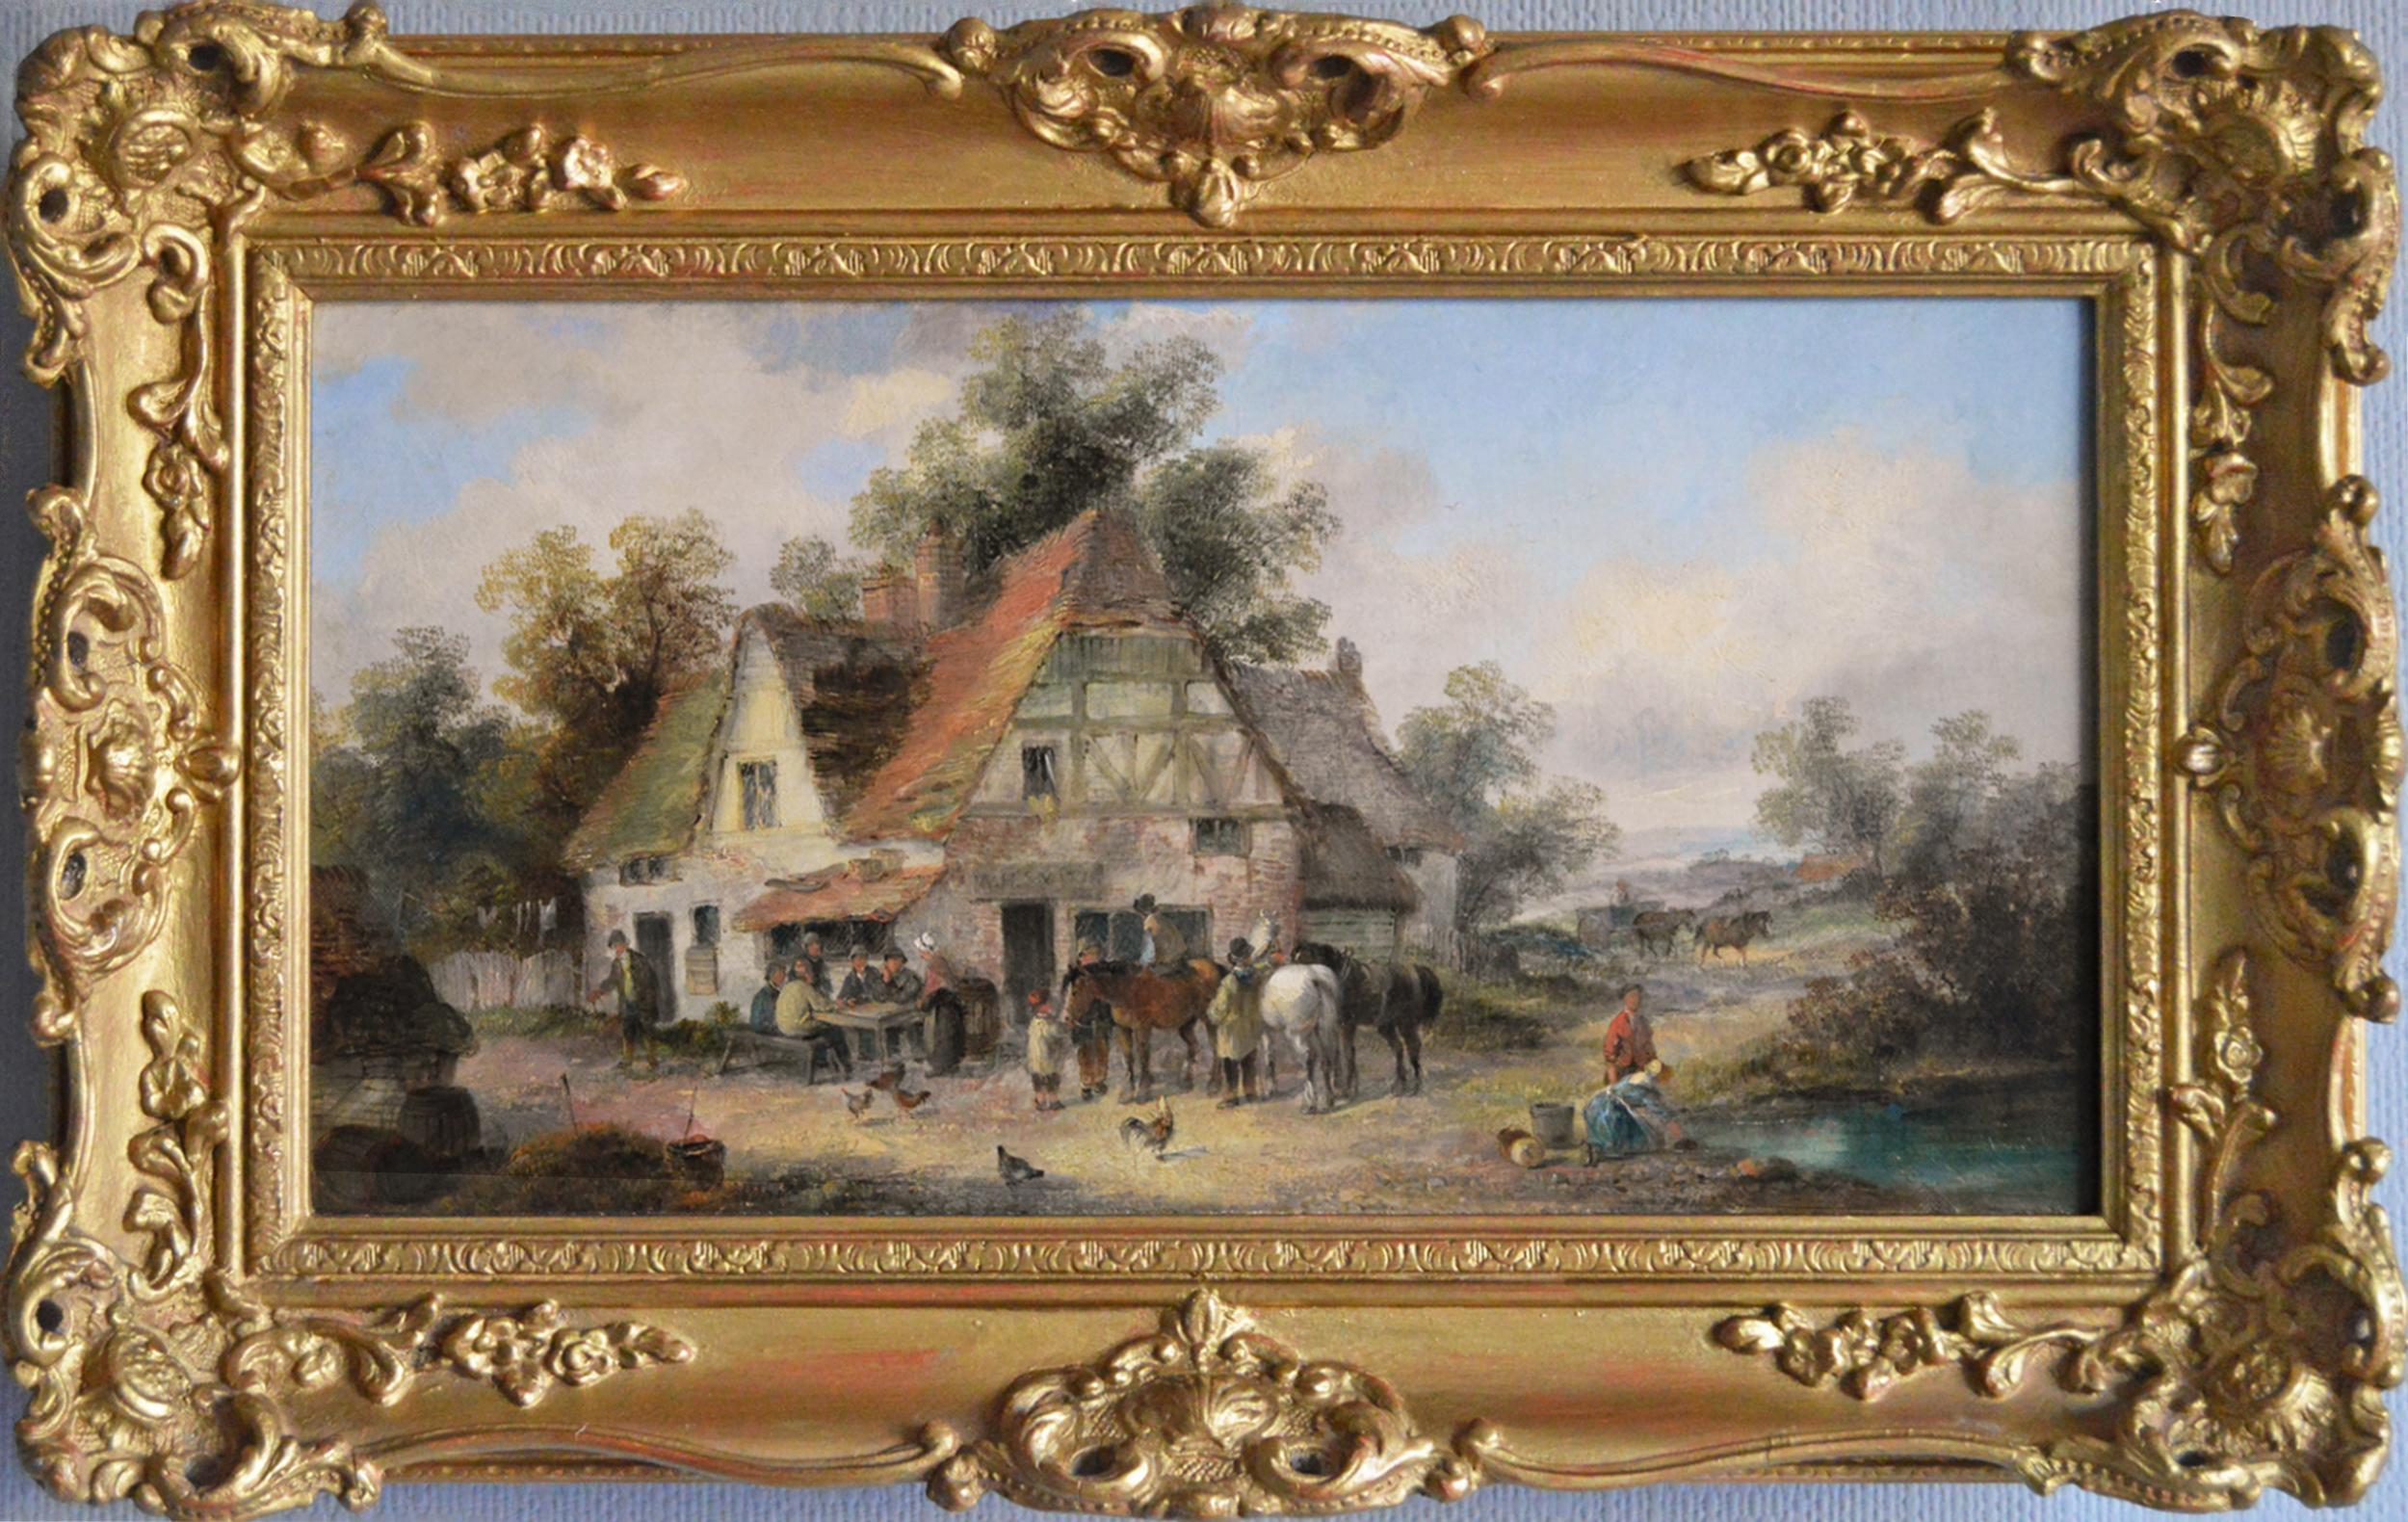 19th Century landscape oil painting of a village